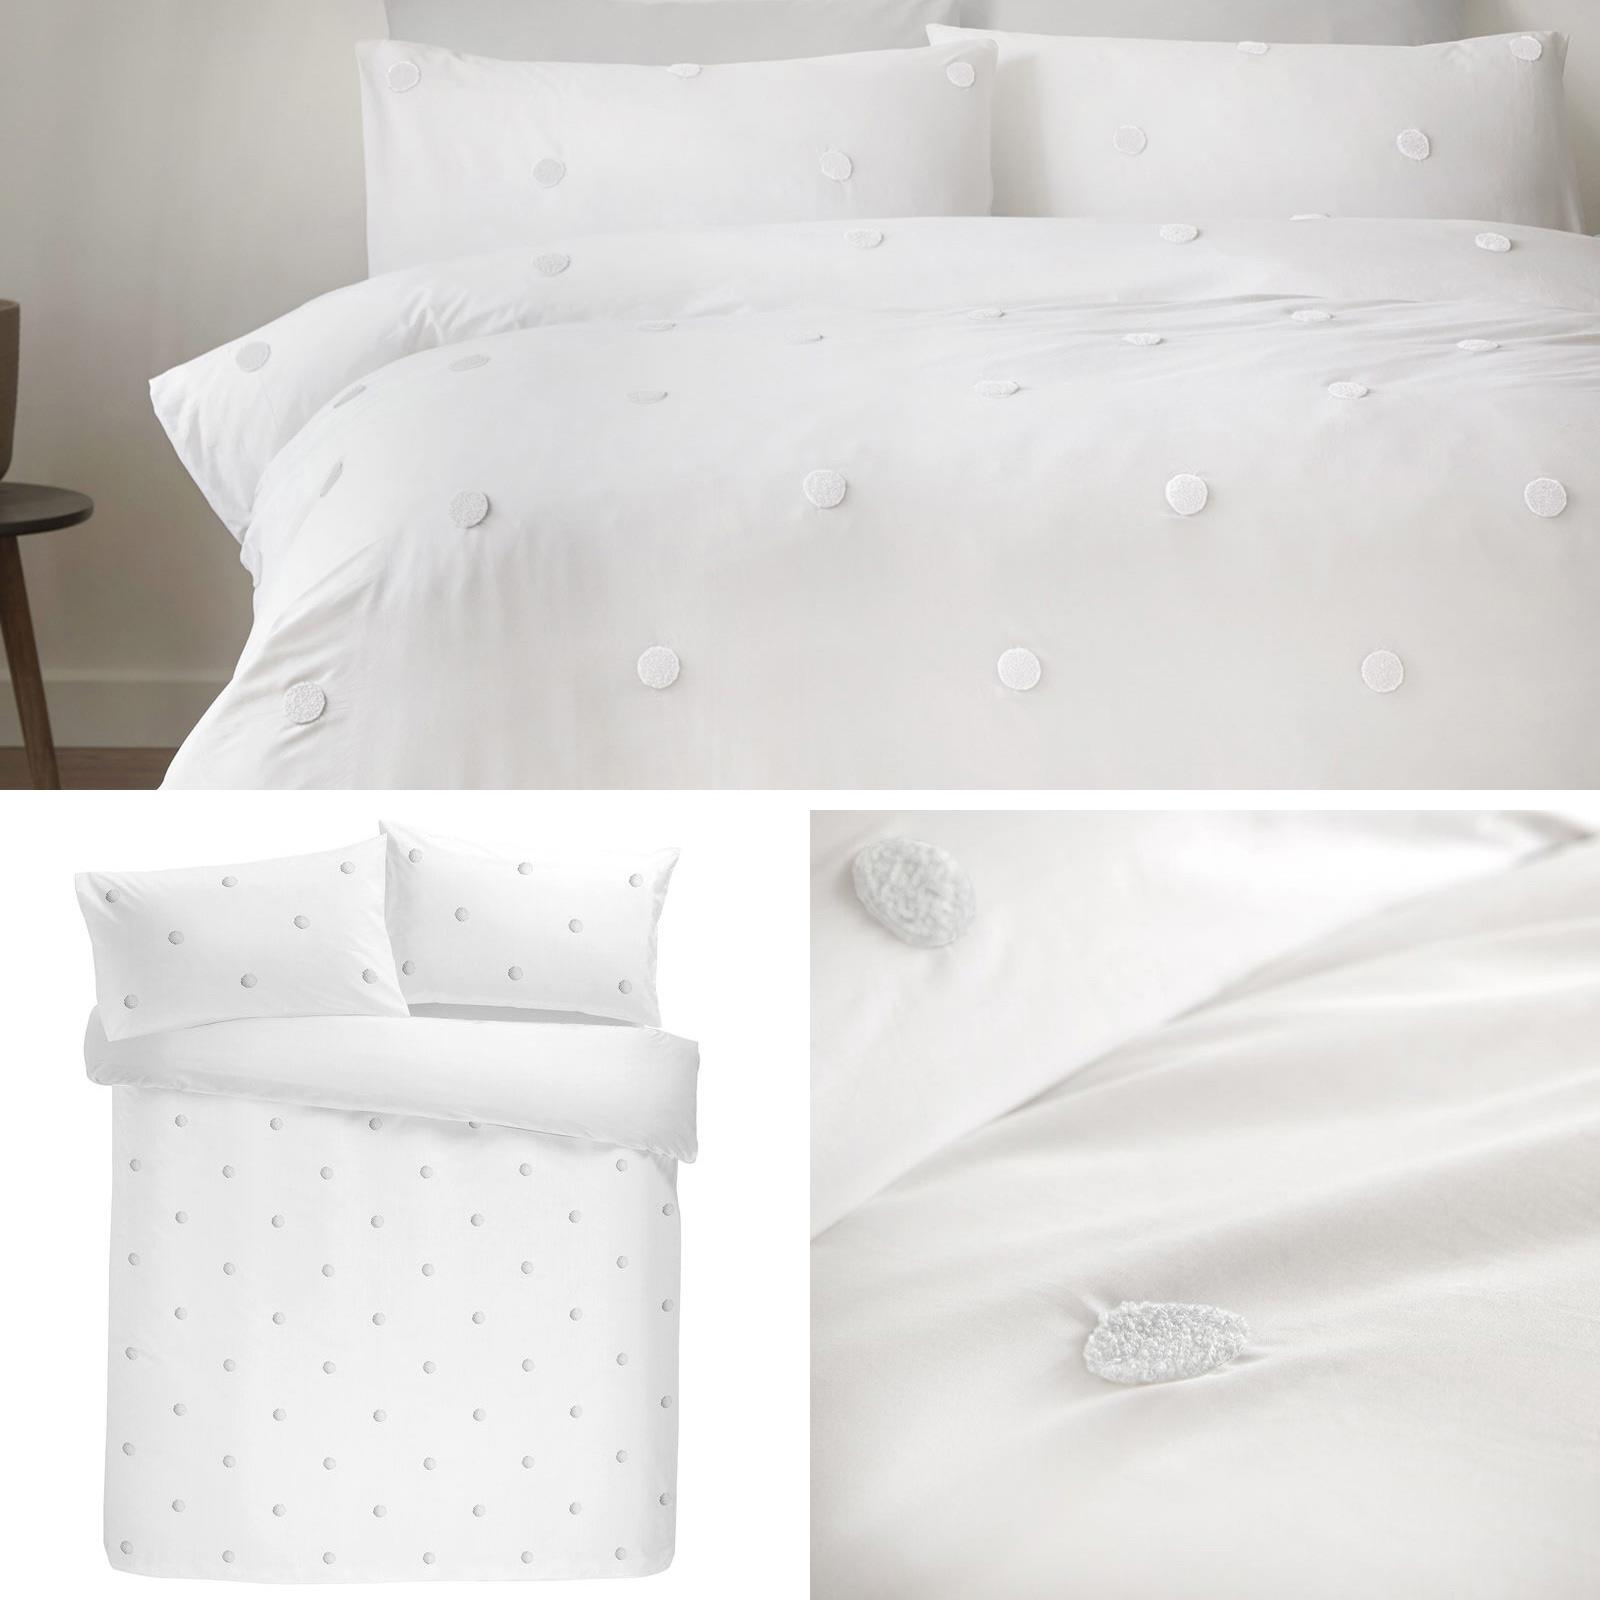 White Duvet Covers Tufted Spots 100 Cotton Textured Quilt Cover Bedding Sets Ebay